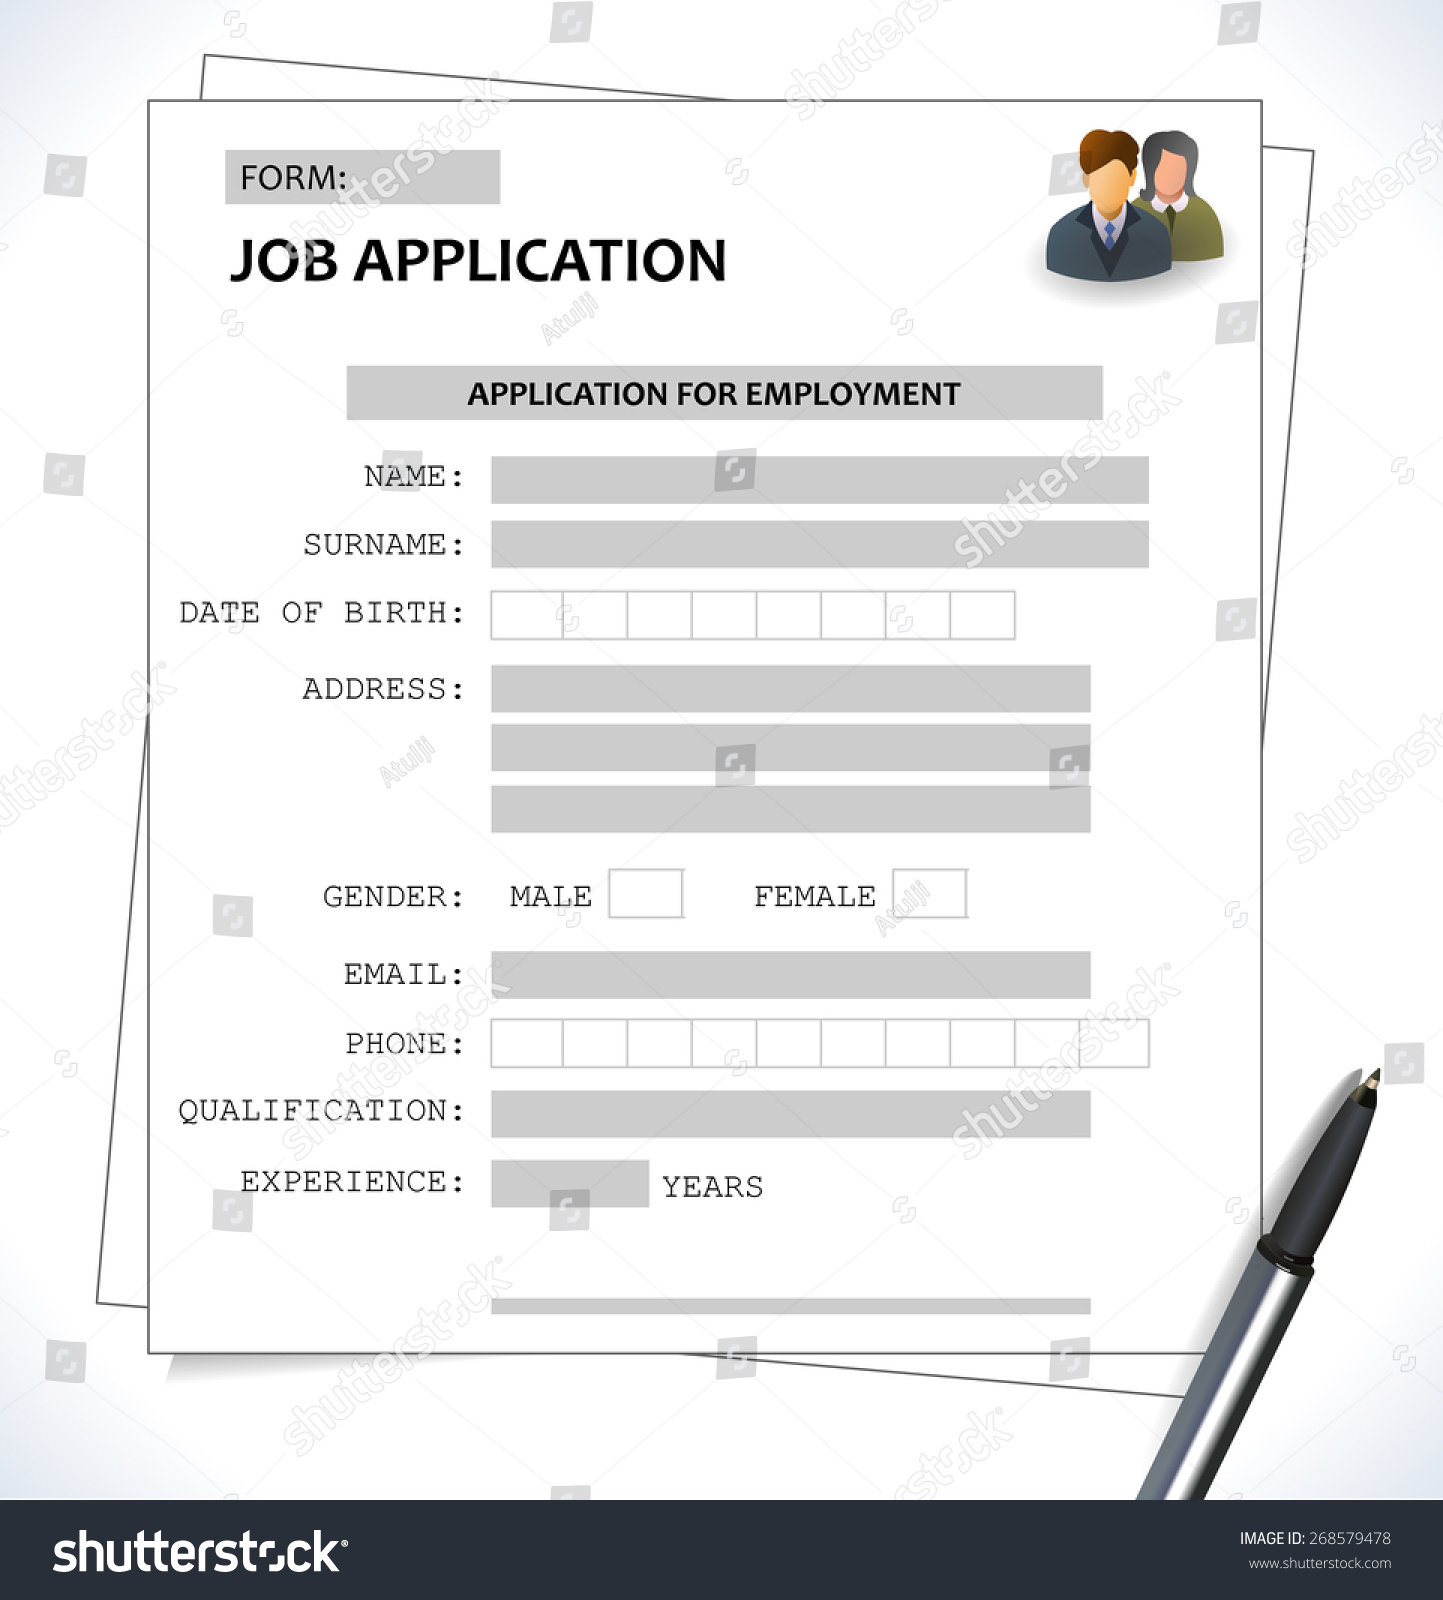 minimalist cv resume template job application form vector